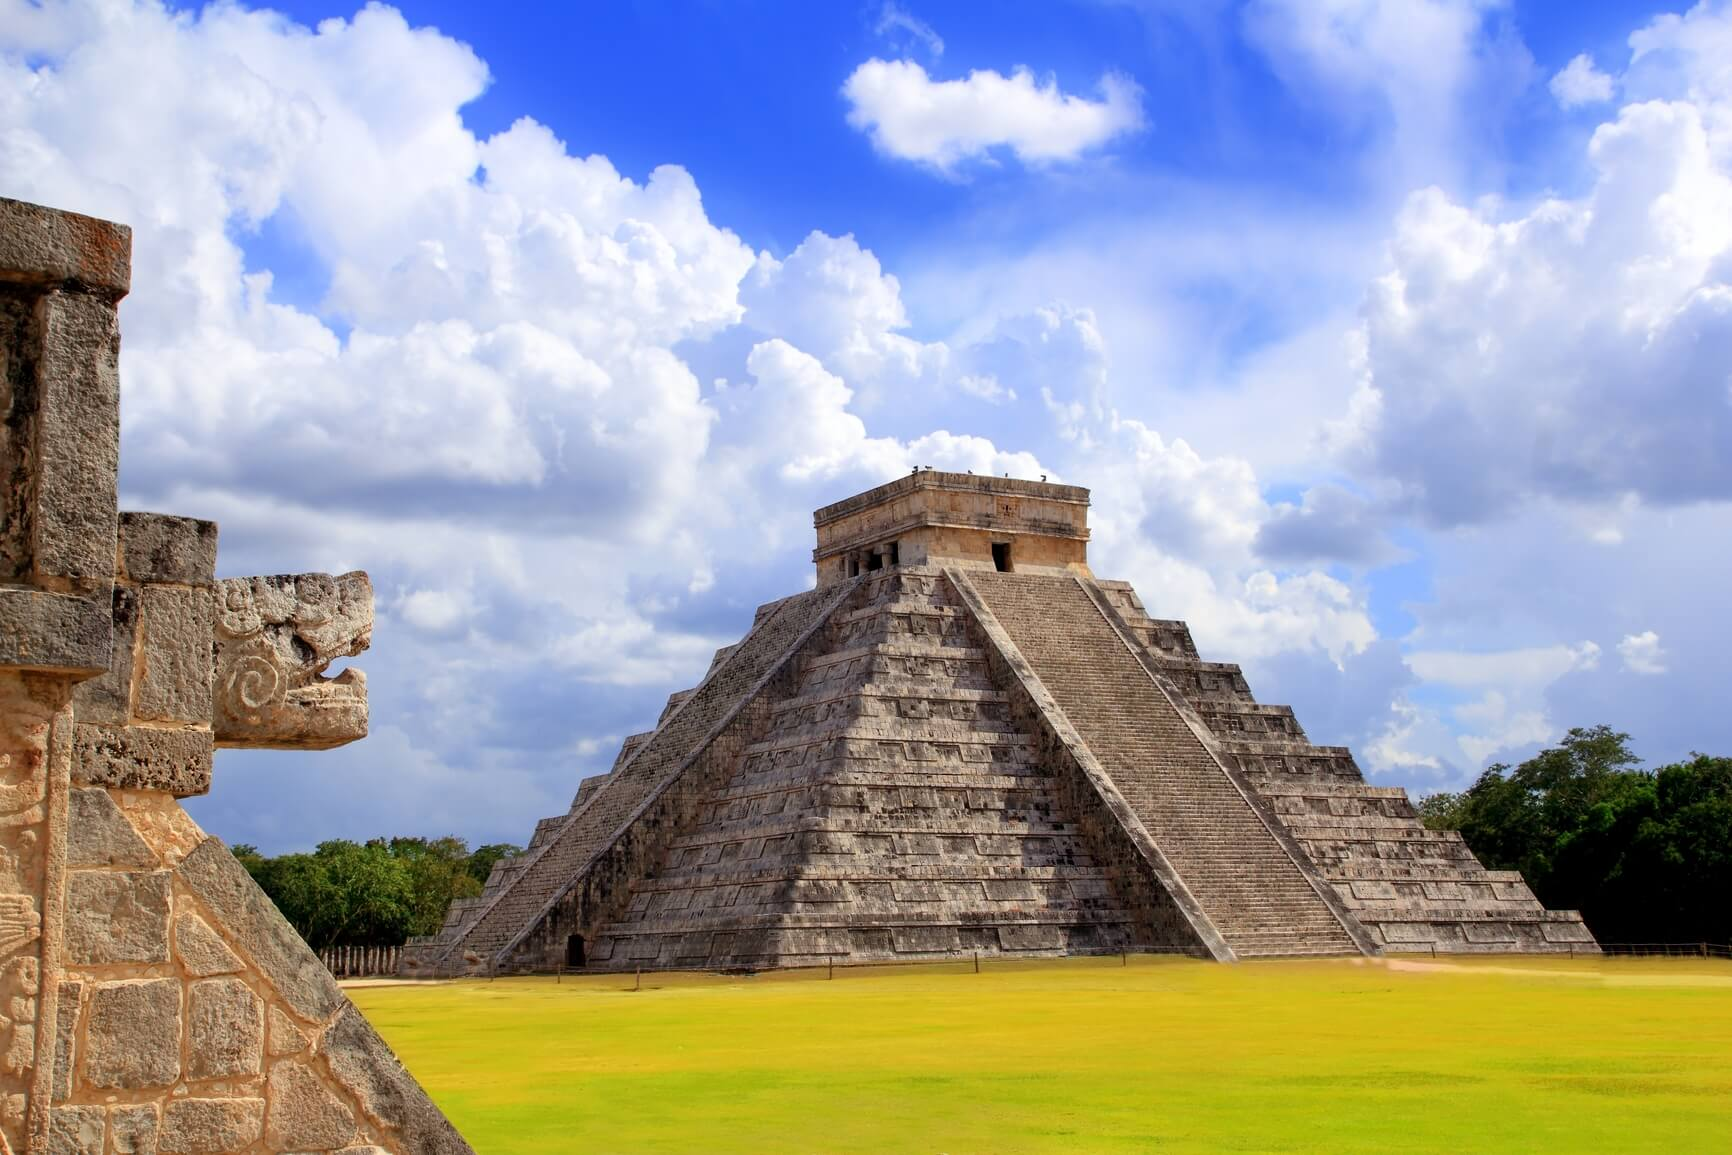 Vienna, Austria to Cancun, Mexico for only €377 roundtrip (Jan-Mar dates)